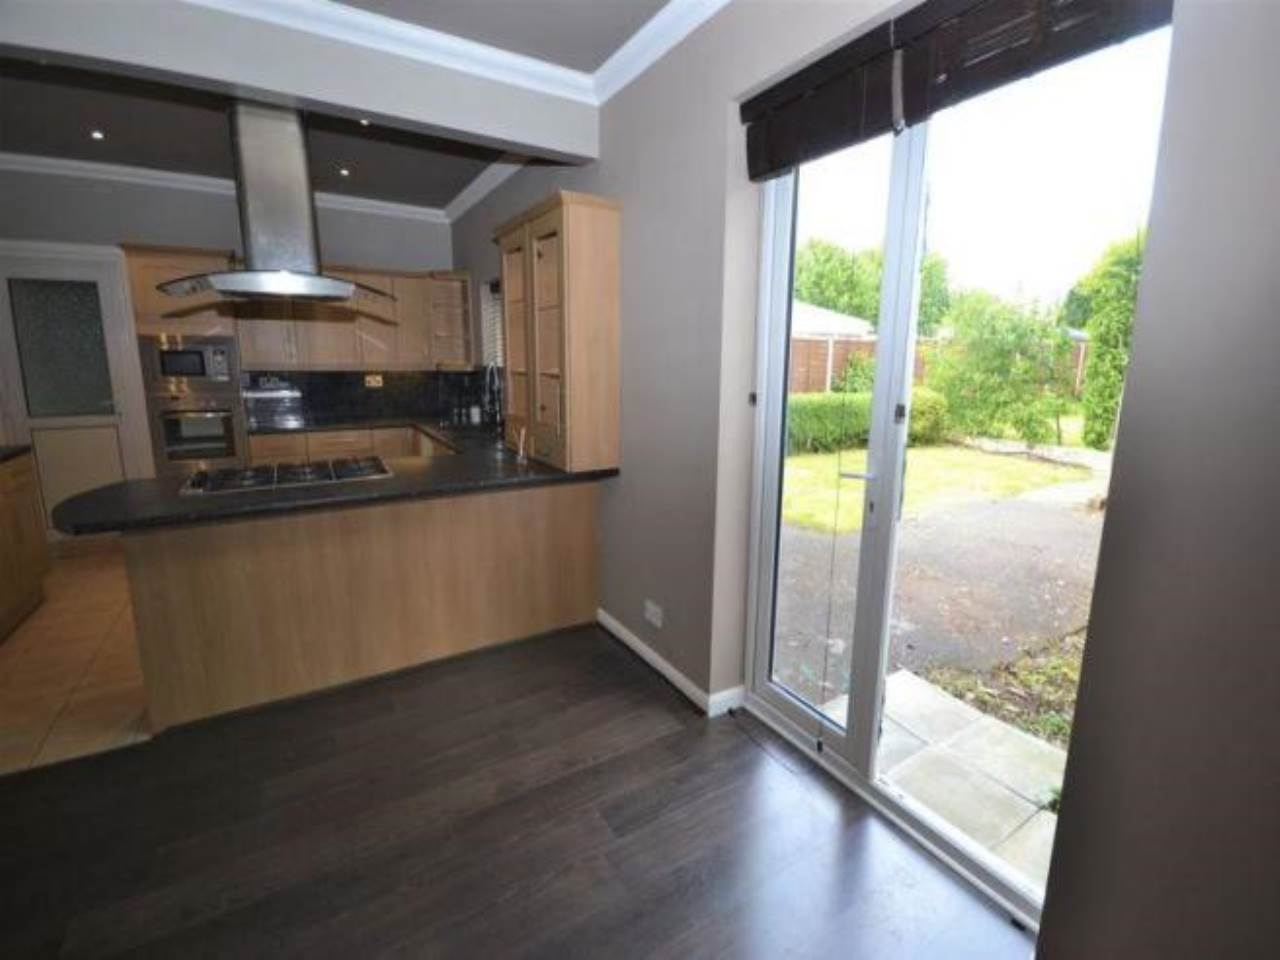 4 bed house for sale in Cowper Road, Moordown 5